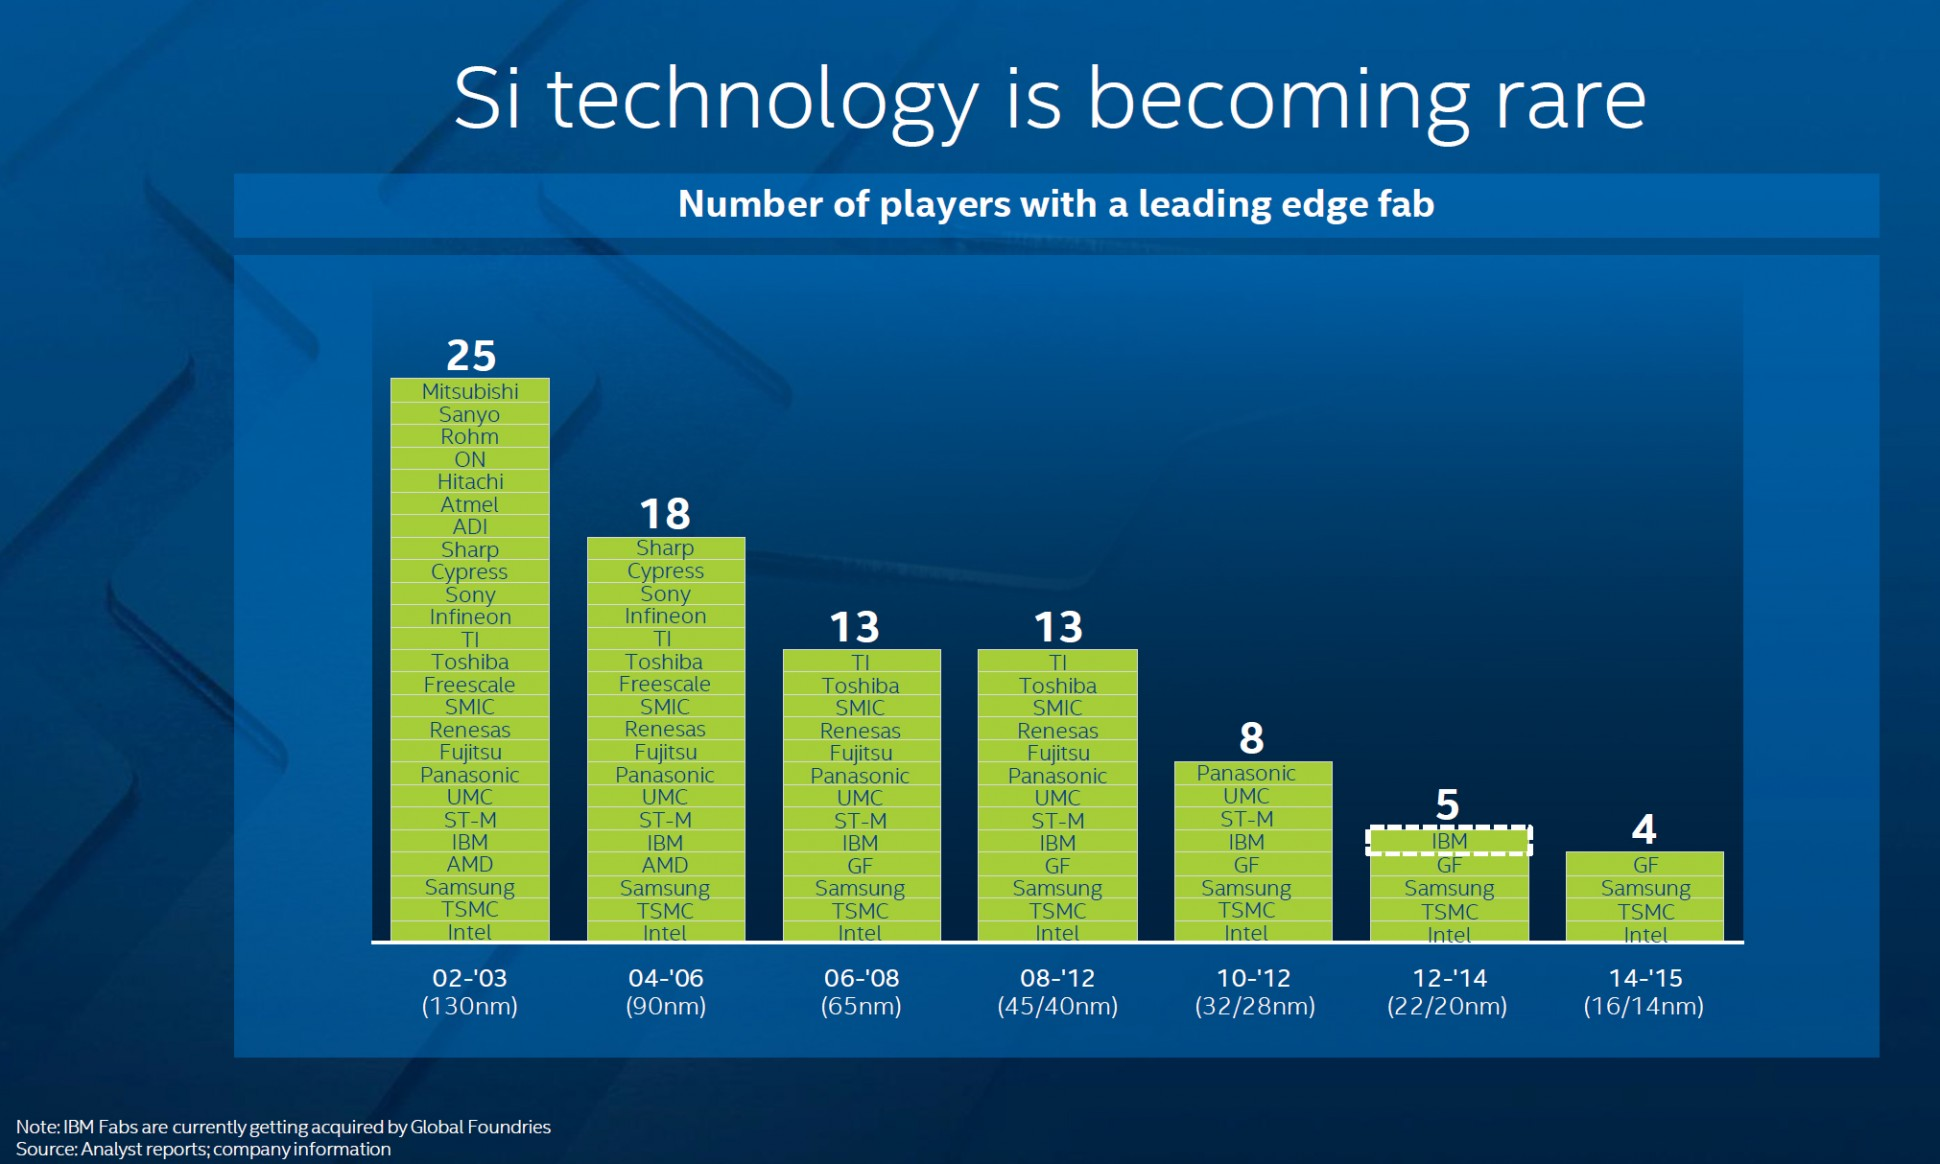 https://diit.cz/sites/default/files/intel_chart_number_of_players_with_a_leading_edge_fab.jpg